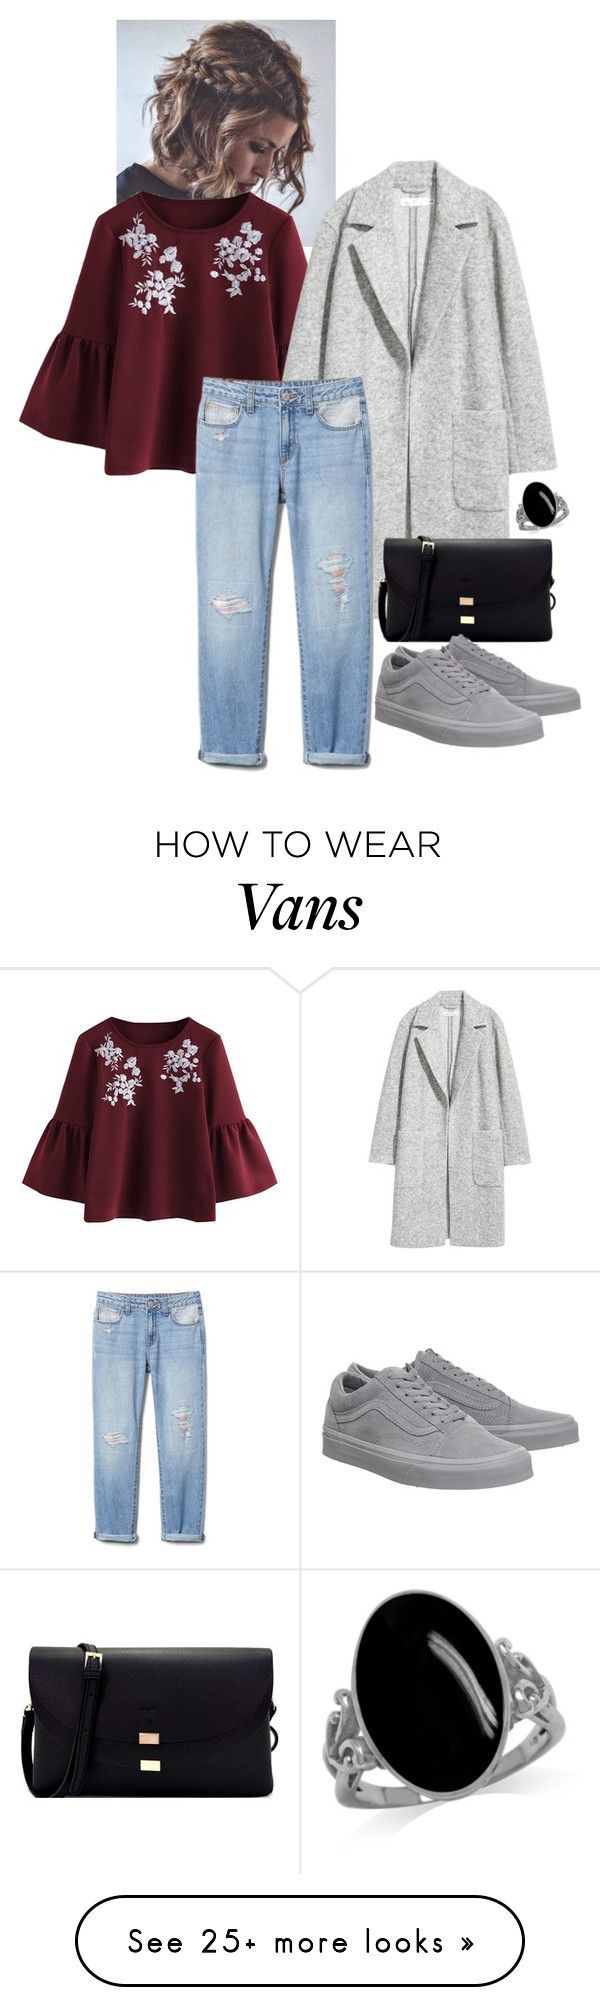 """maroon top boho"" by afashionpage on Polyvore featuring H&M and Vans"